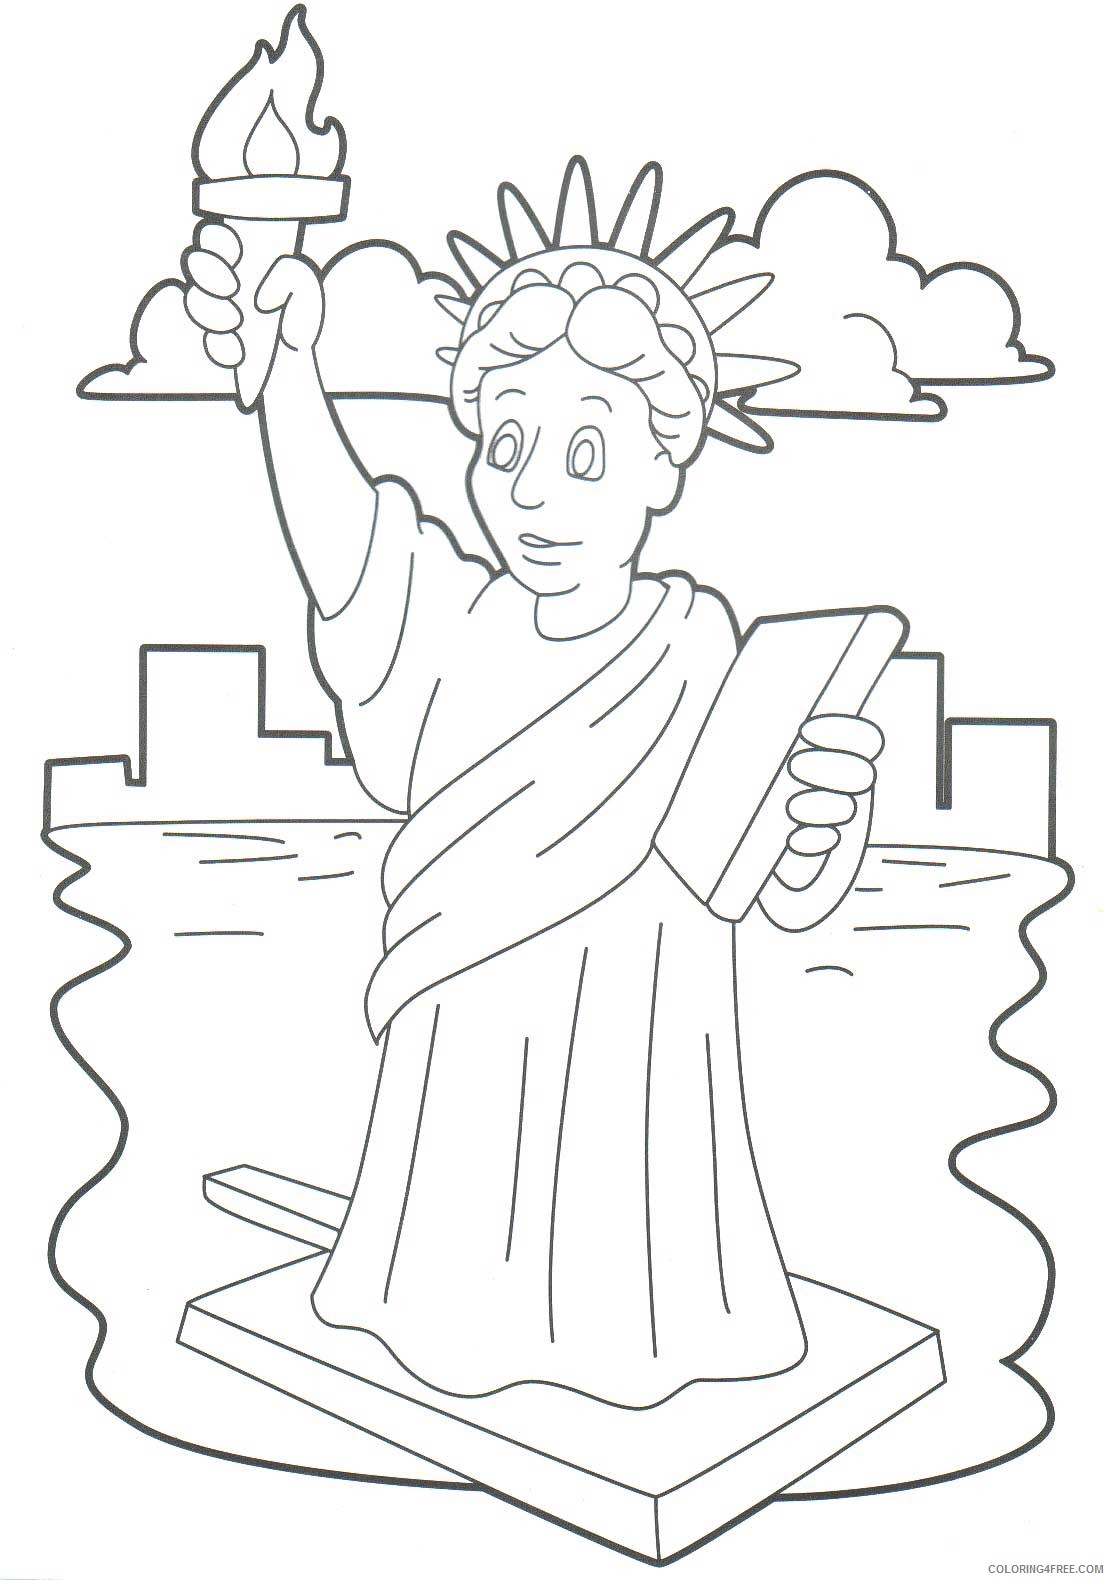 printable statue of liberty coloring pages for kids Coloring4free